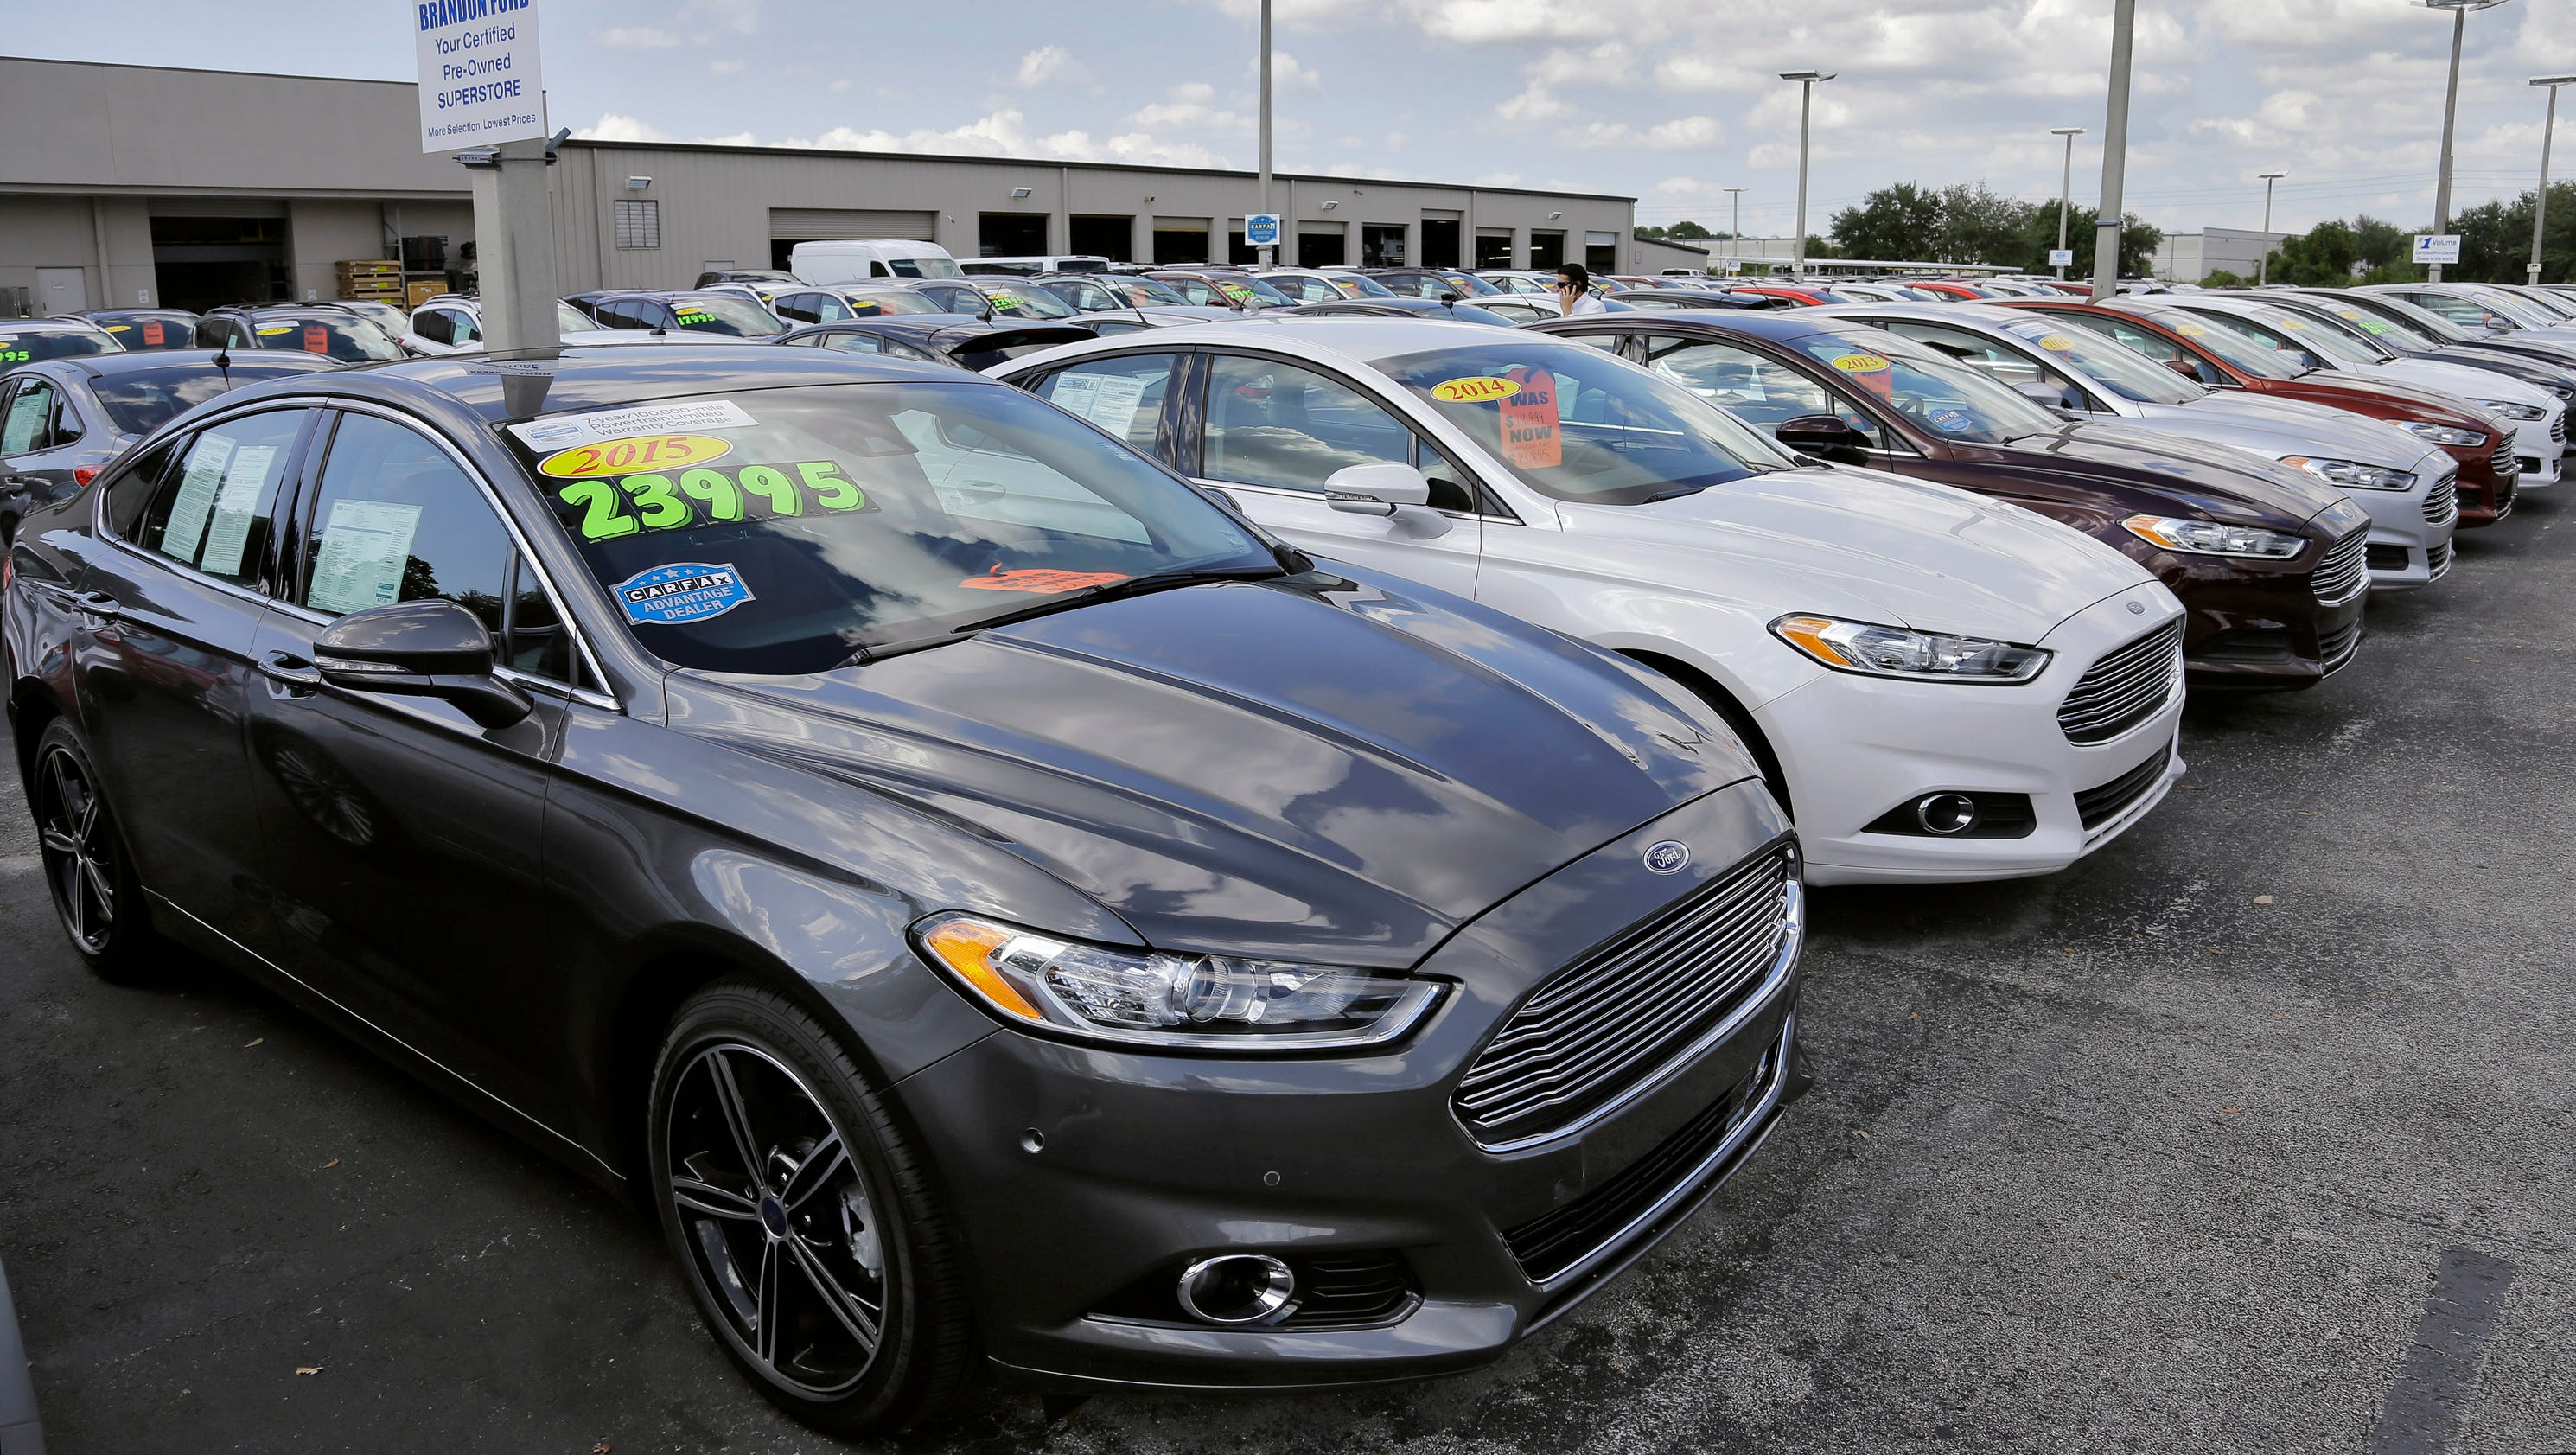 Used Car Dealers That Buy Cars For Cash